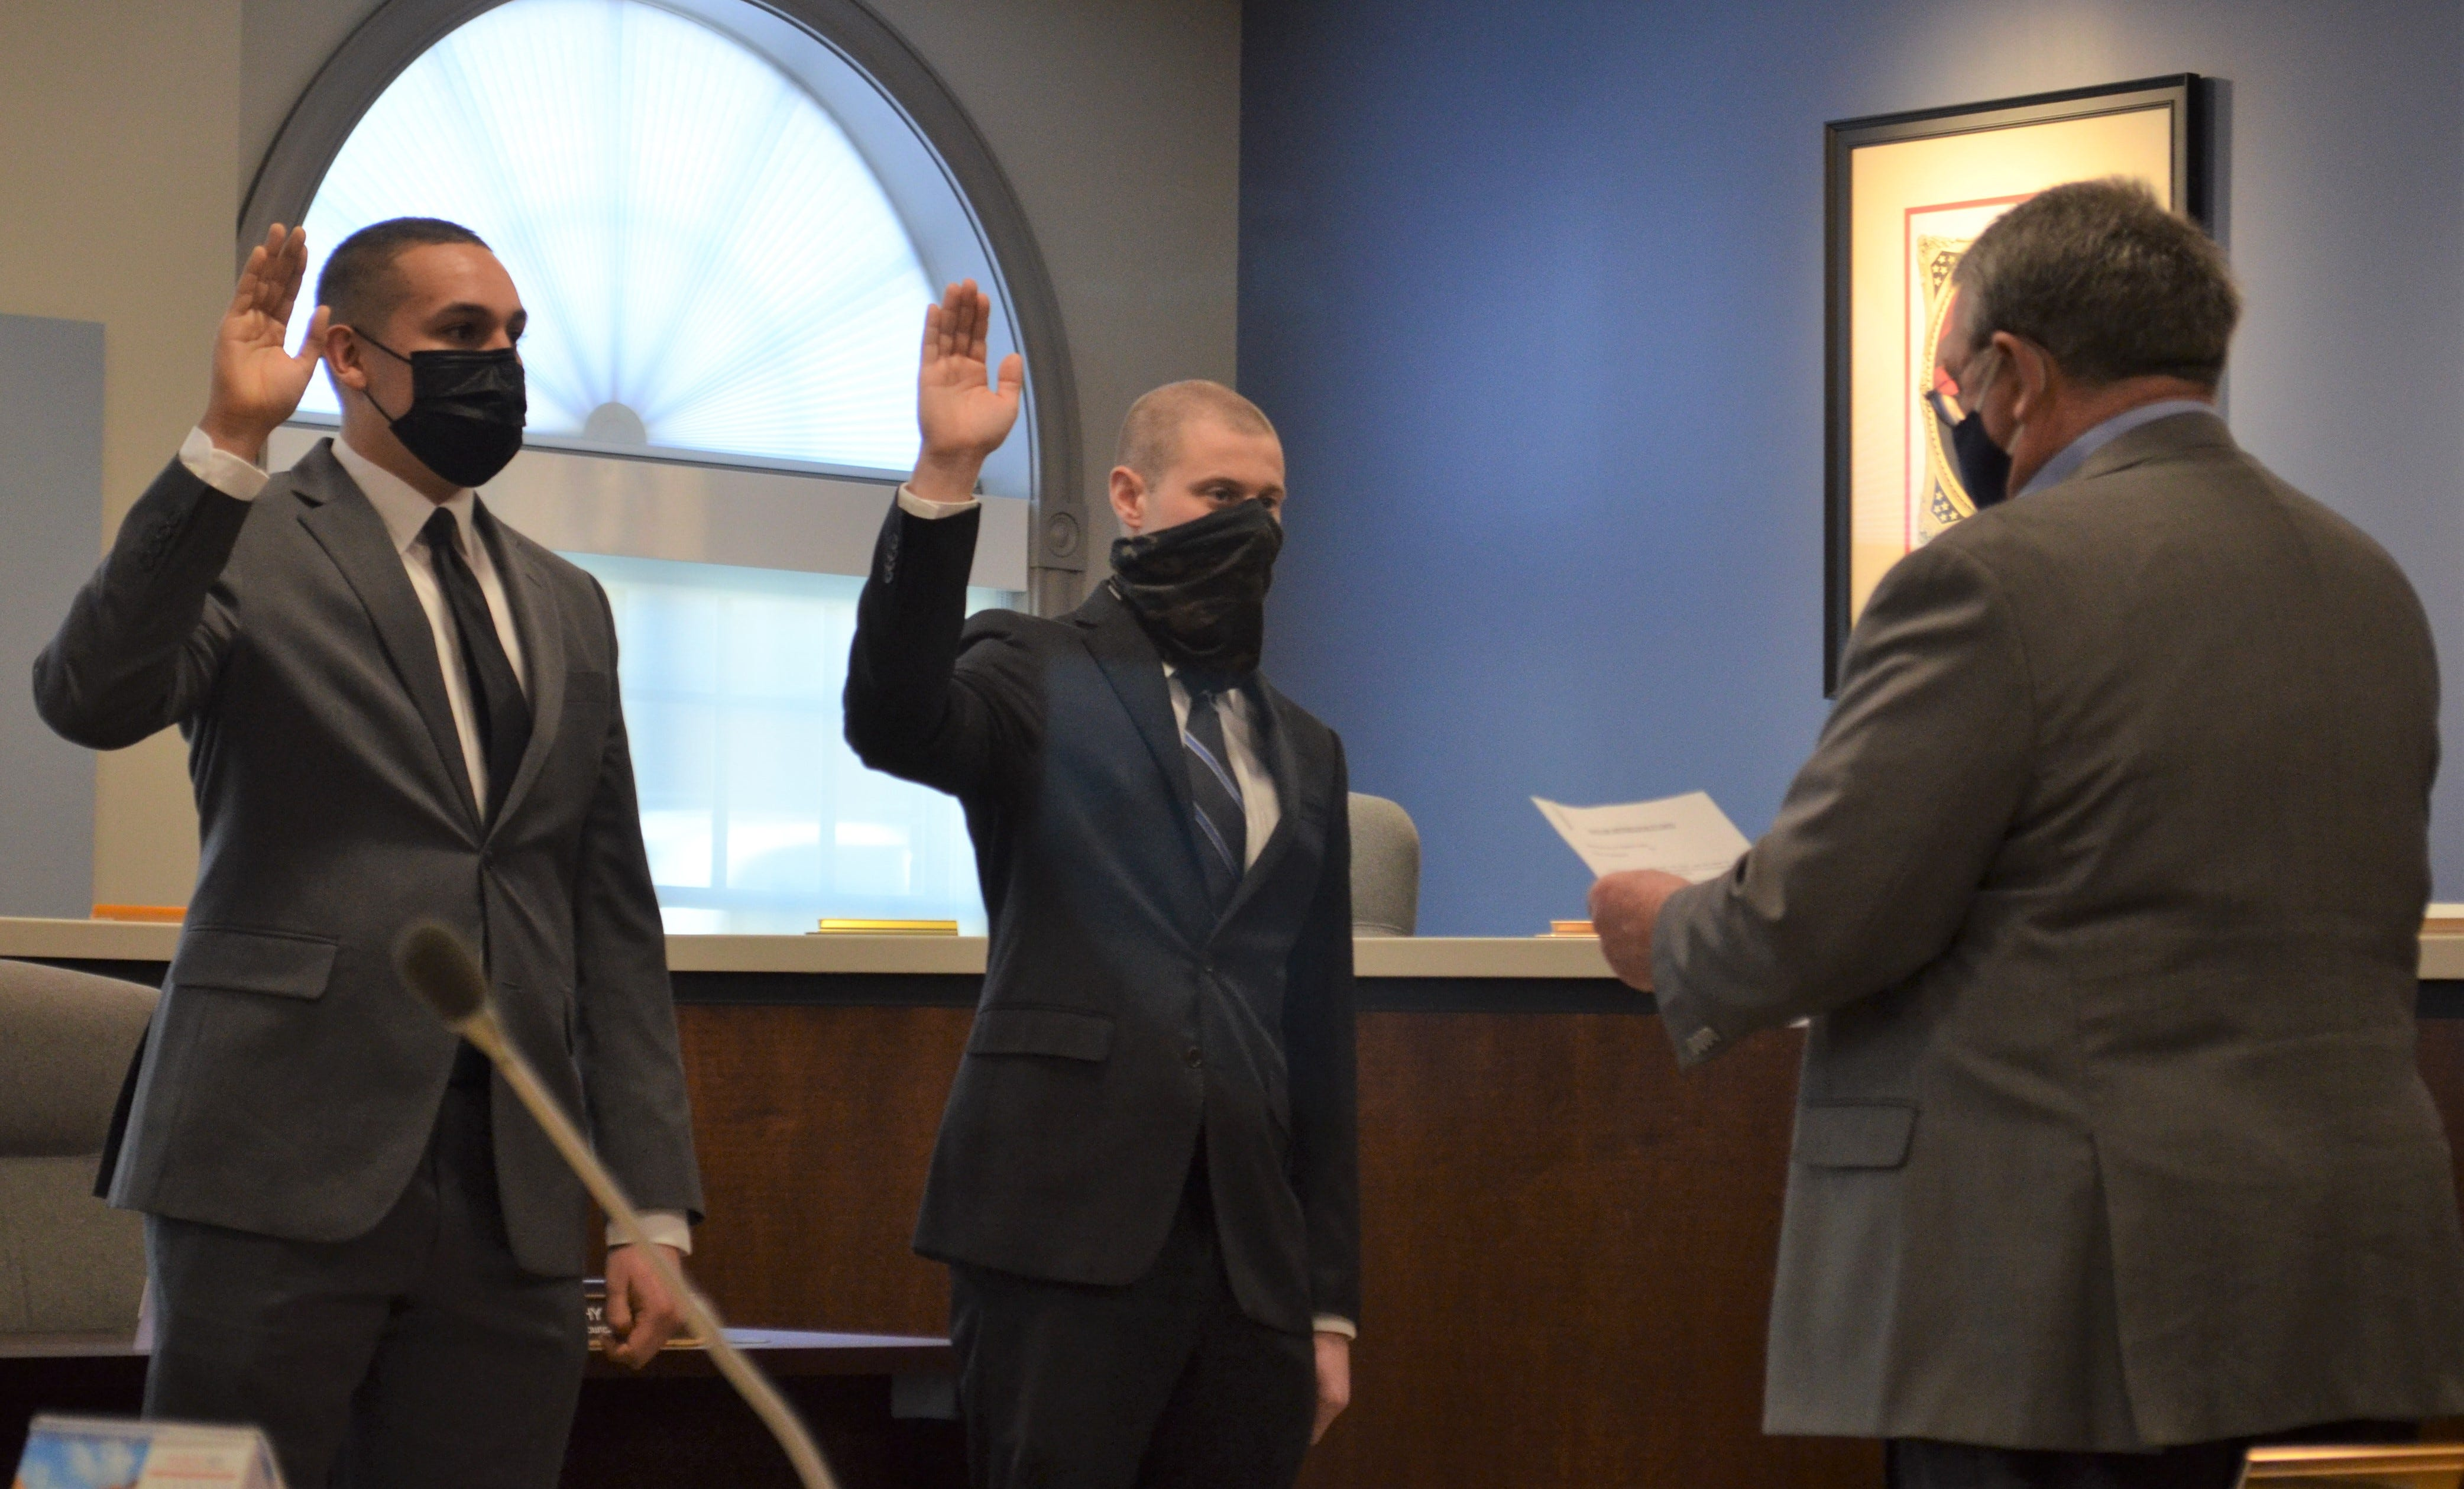 Ernesto Lupian, 24, of Abbottstown, and Conner Eshbaugh, 24, of Chambersburg were sworn into the Chambersburg Police Department by Mayor Walt Bietsch on March 5, 2021. Eric Mavila,23,of Mt. Pocono, (not pictured) was sworn in on Feb. 24, 2021.